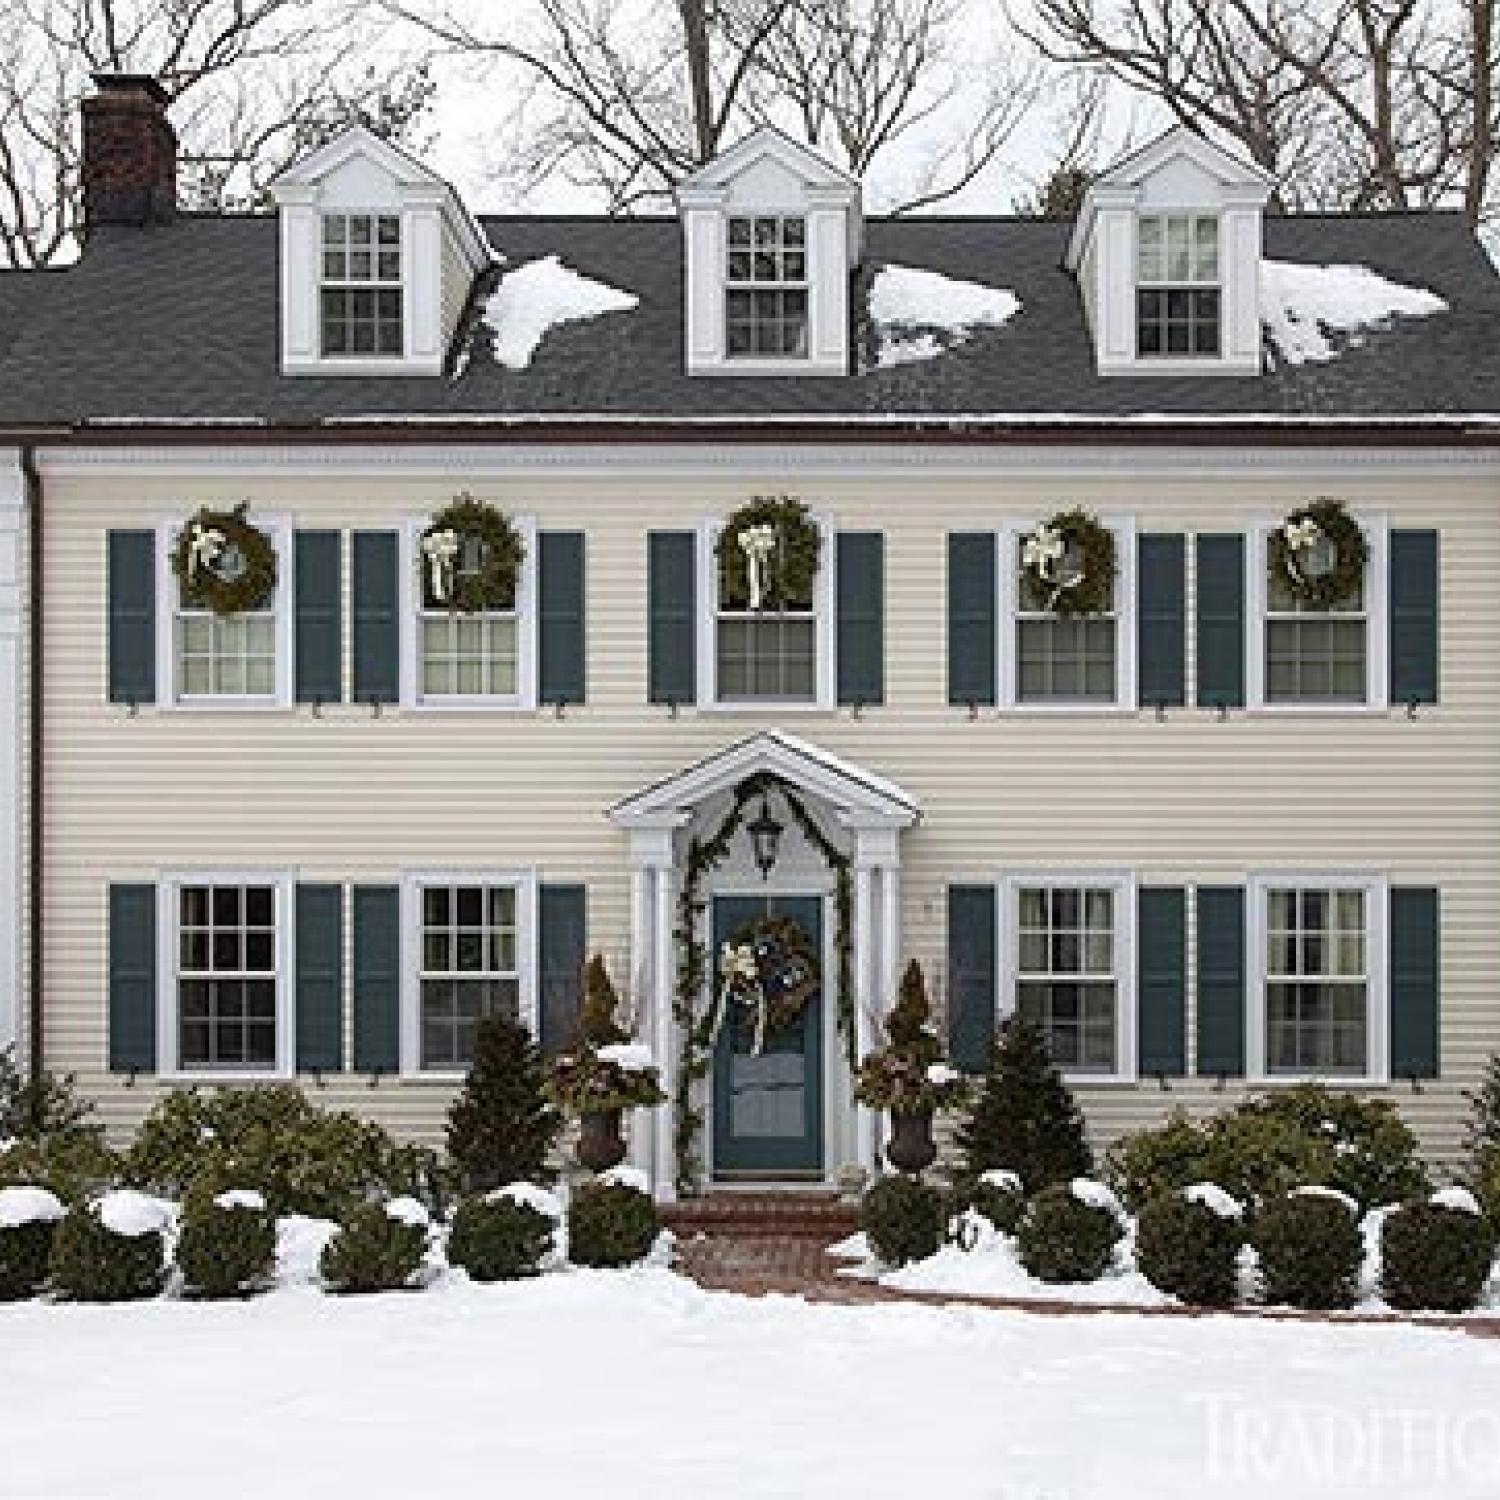 New england home with hushed holiday palette traditional for Classic new england home designs